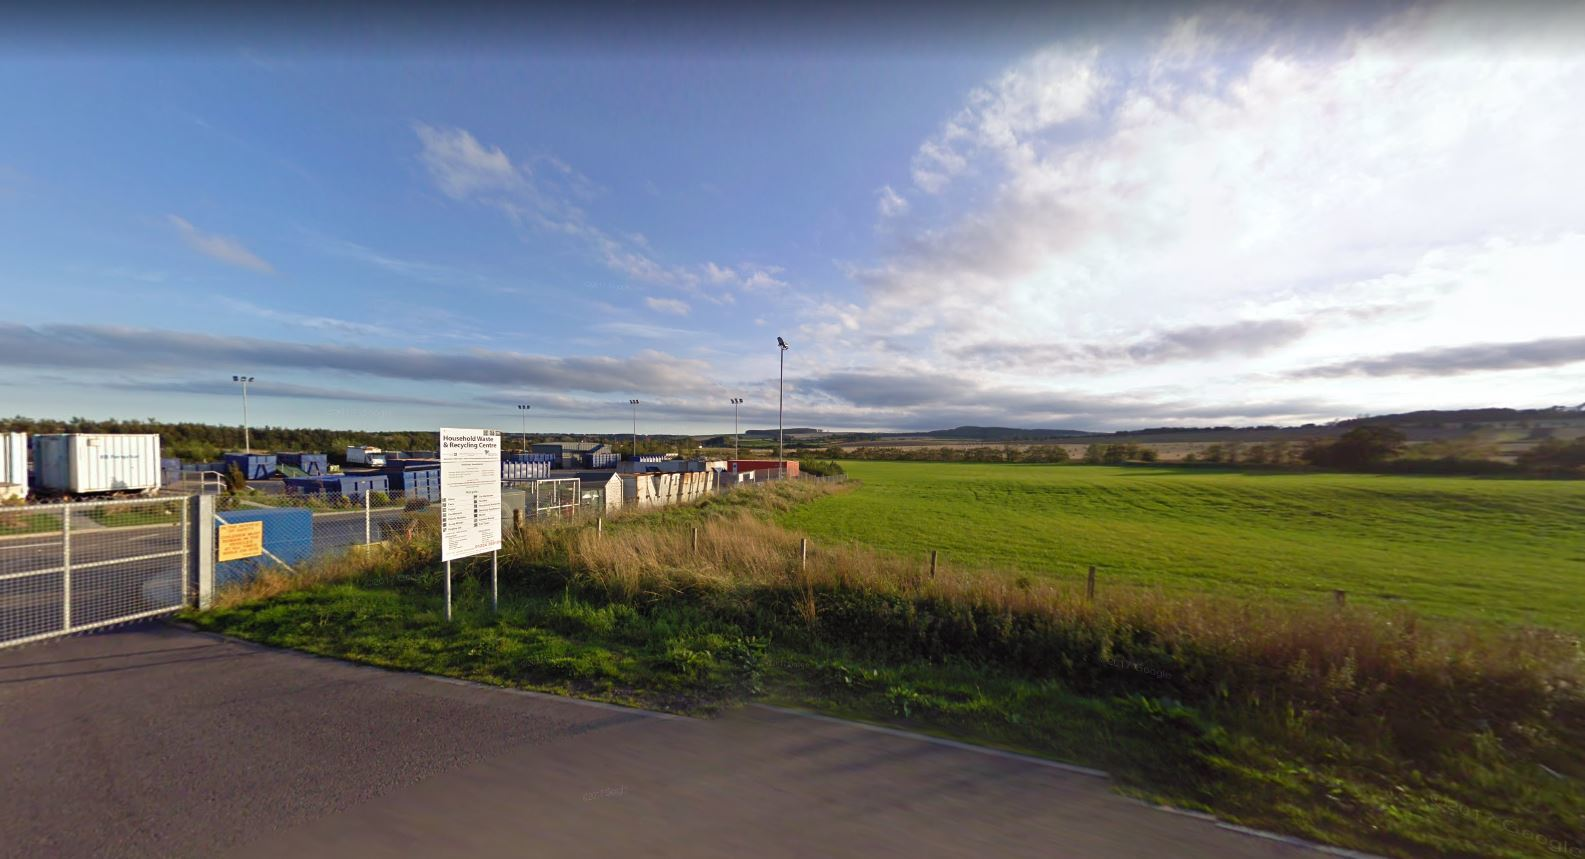 Stonehaven's Redcloak Household Waste and Recycling Centre